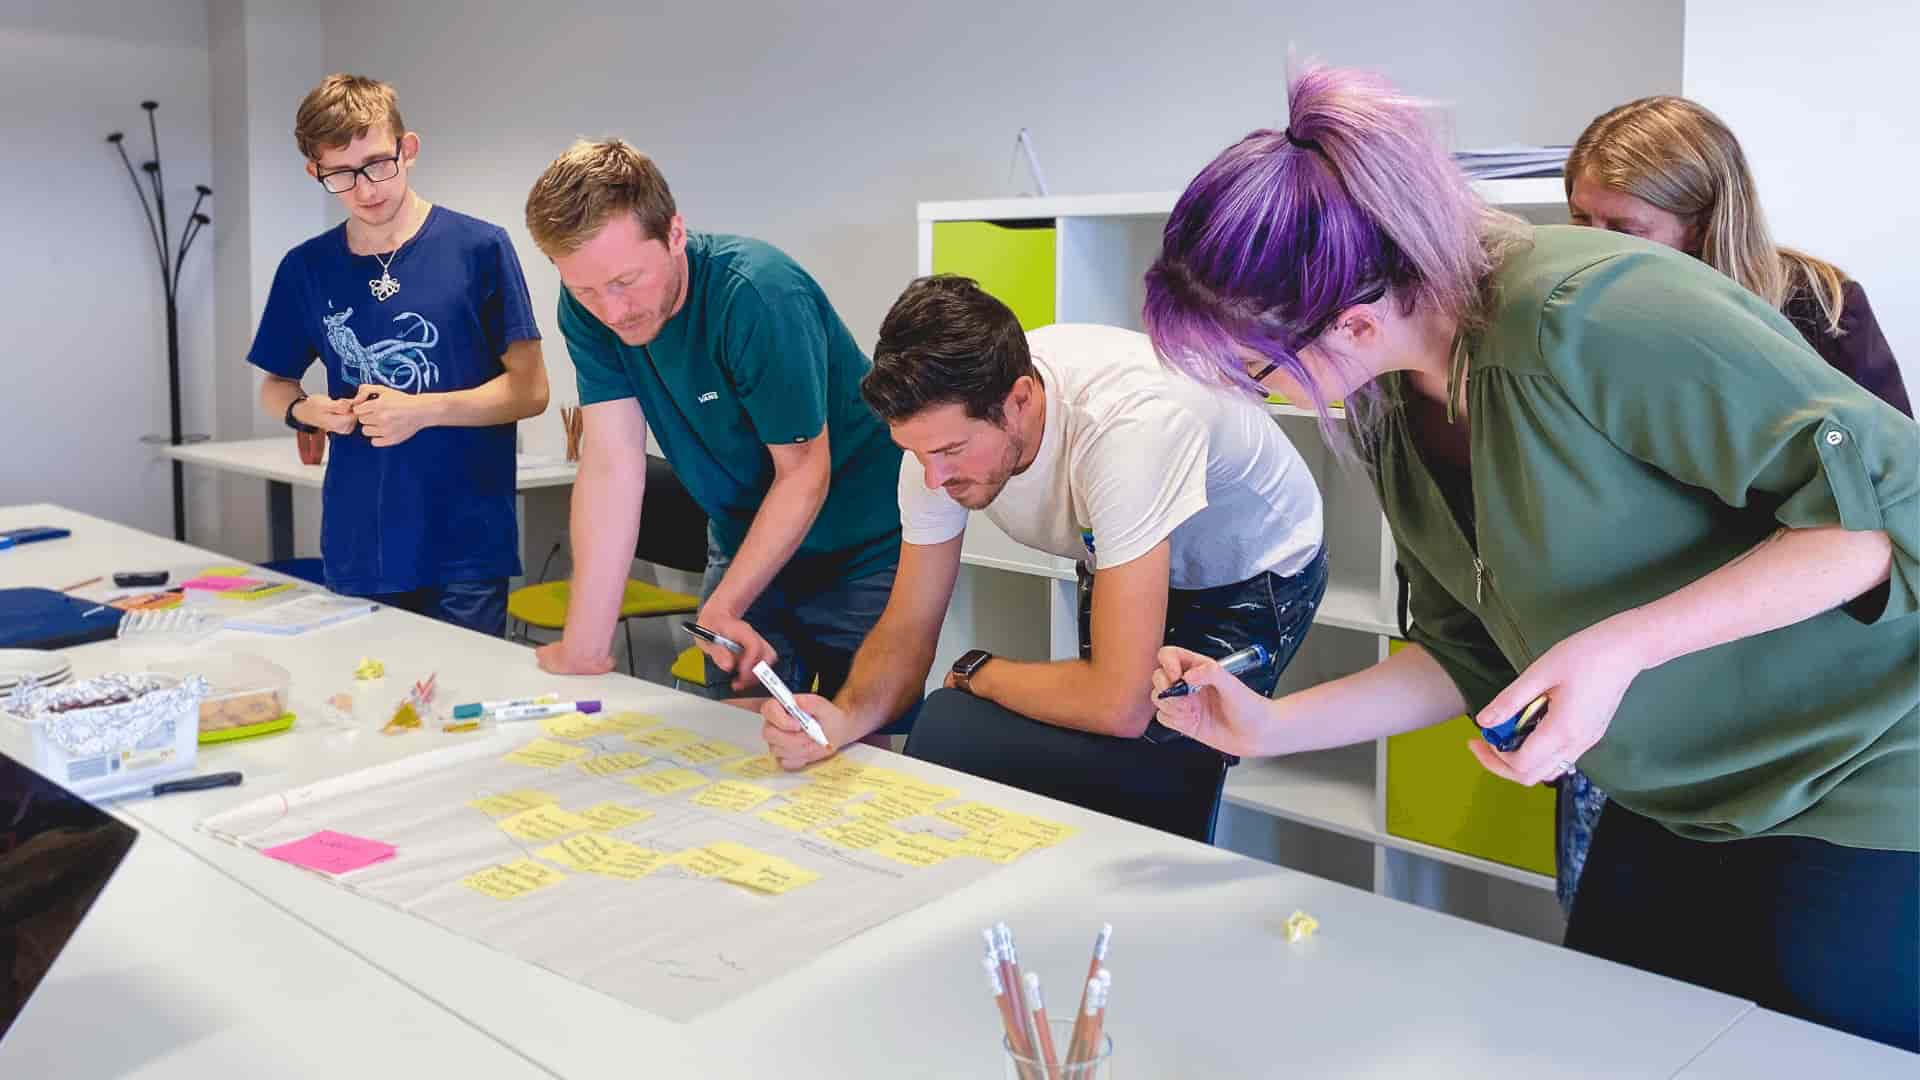 The Hiyield team working together creating post it notes